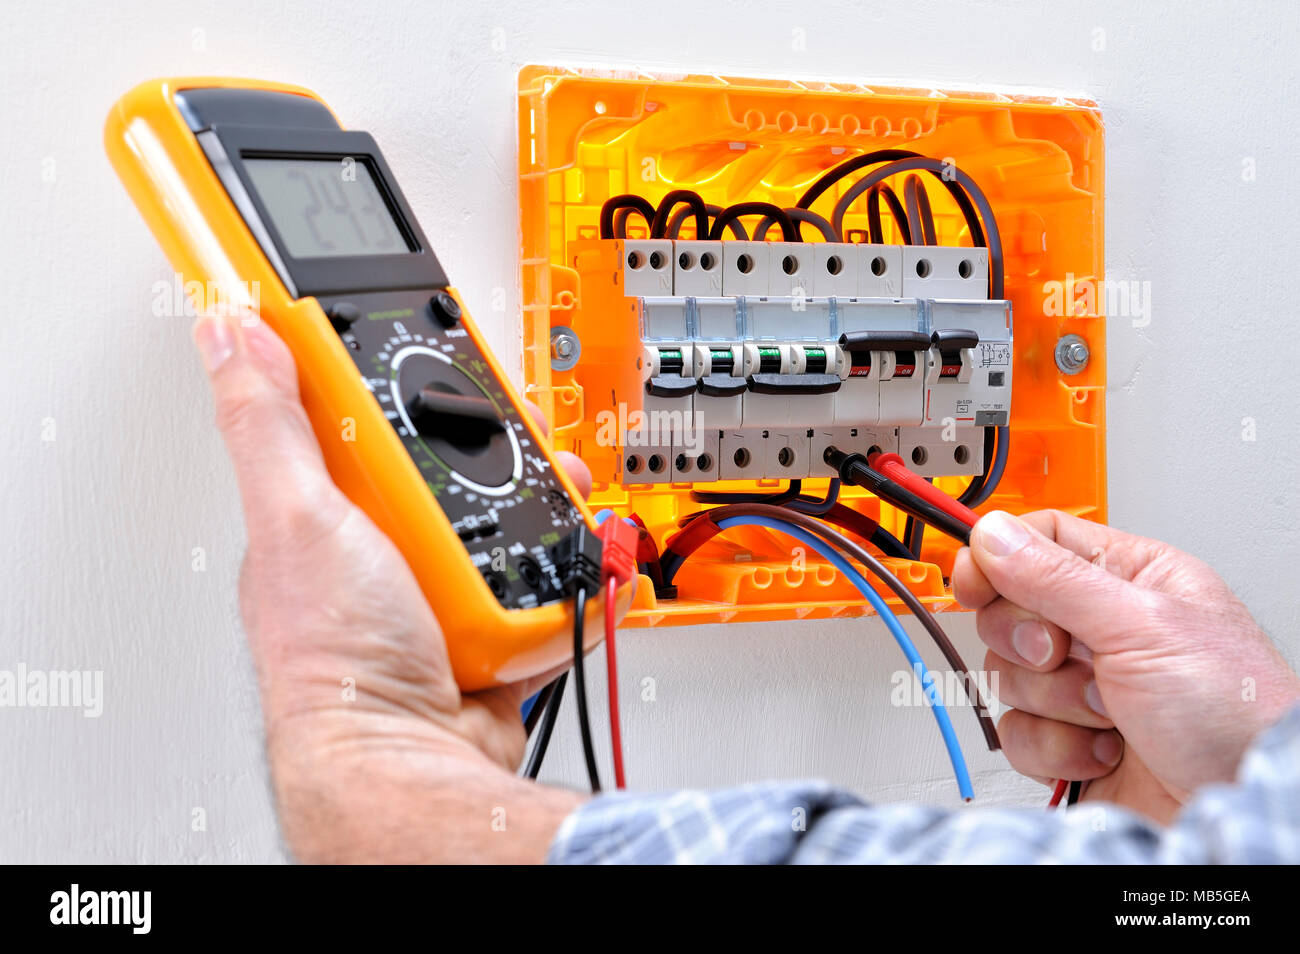 hight resolution of electrician technician working on a residential electrical panel measures the voltage on the terminals of